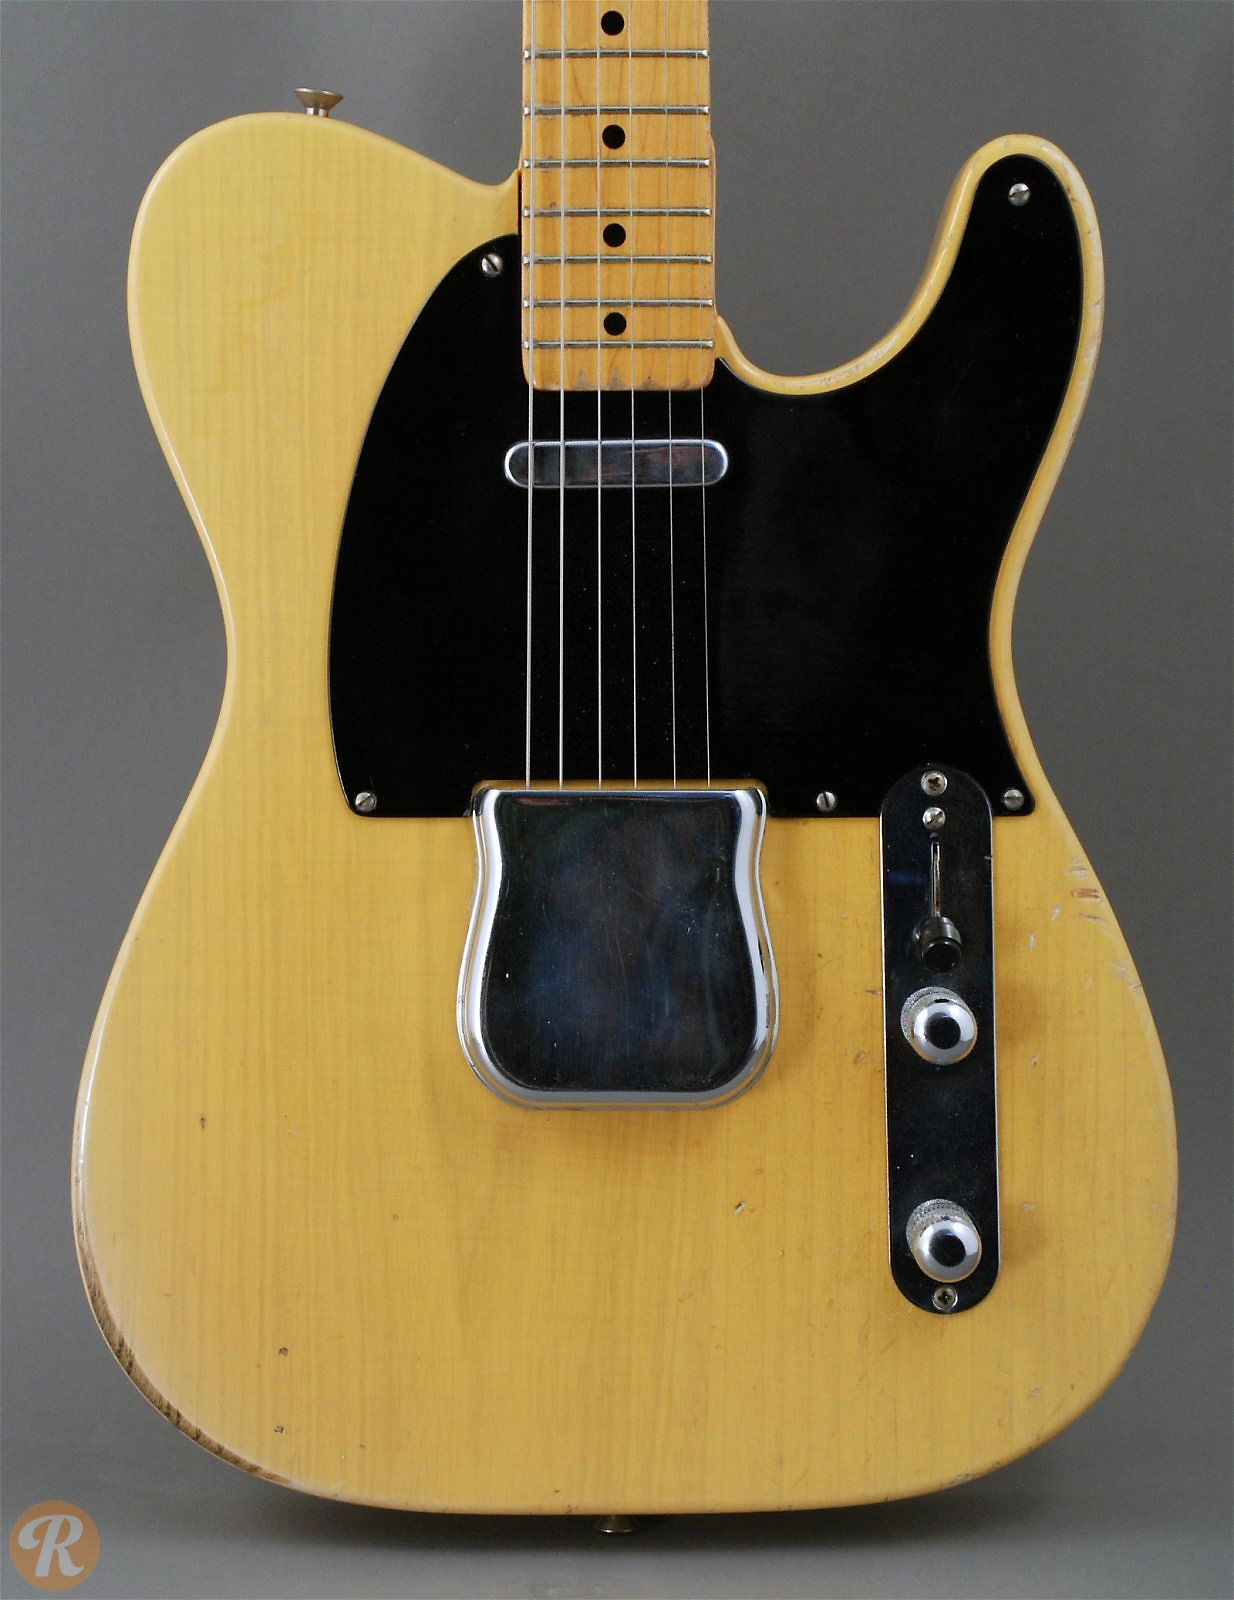 Delighted Strat Wiring Mods Tall Bulldog Security Products Clean Les Paul 3 Pickup Wiring Diagram Installing A Remote Start Young Www Bulldog Com BrightBulldog Security System Fender Telecaster Blonde 1954 | Reverb